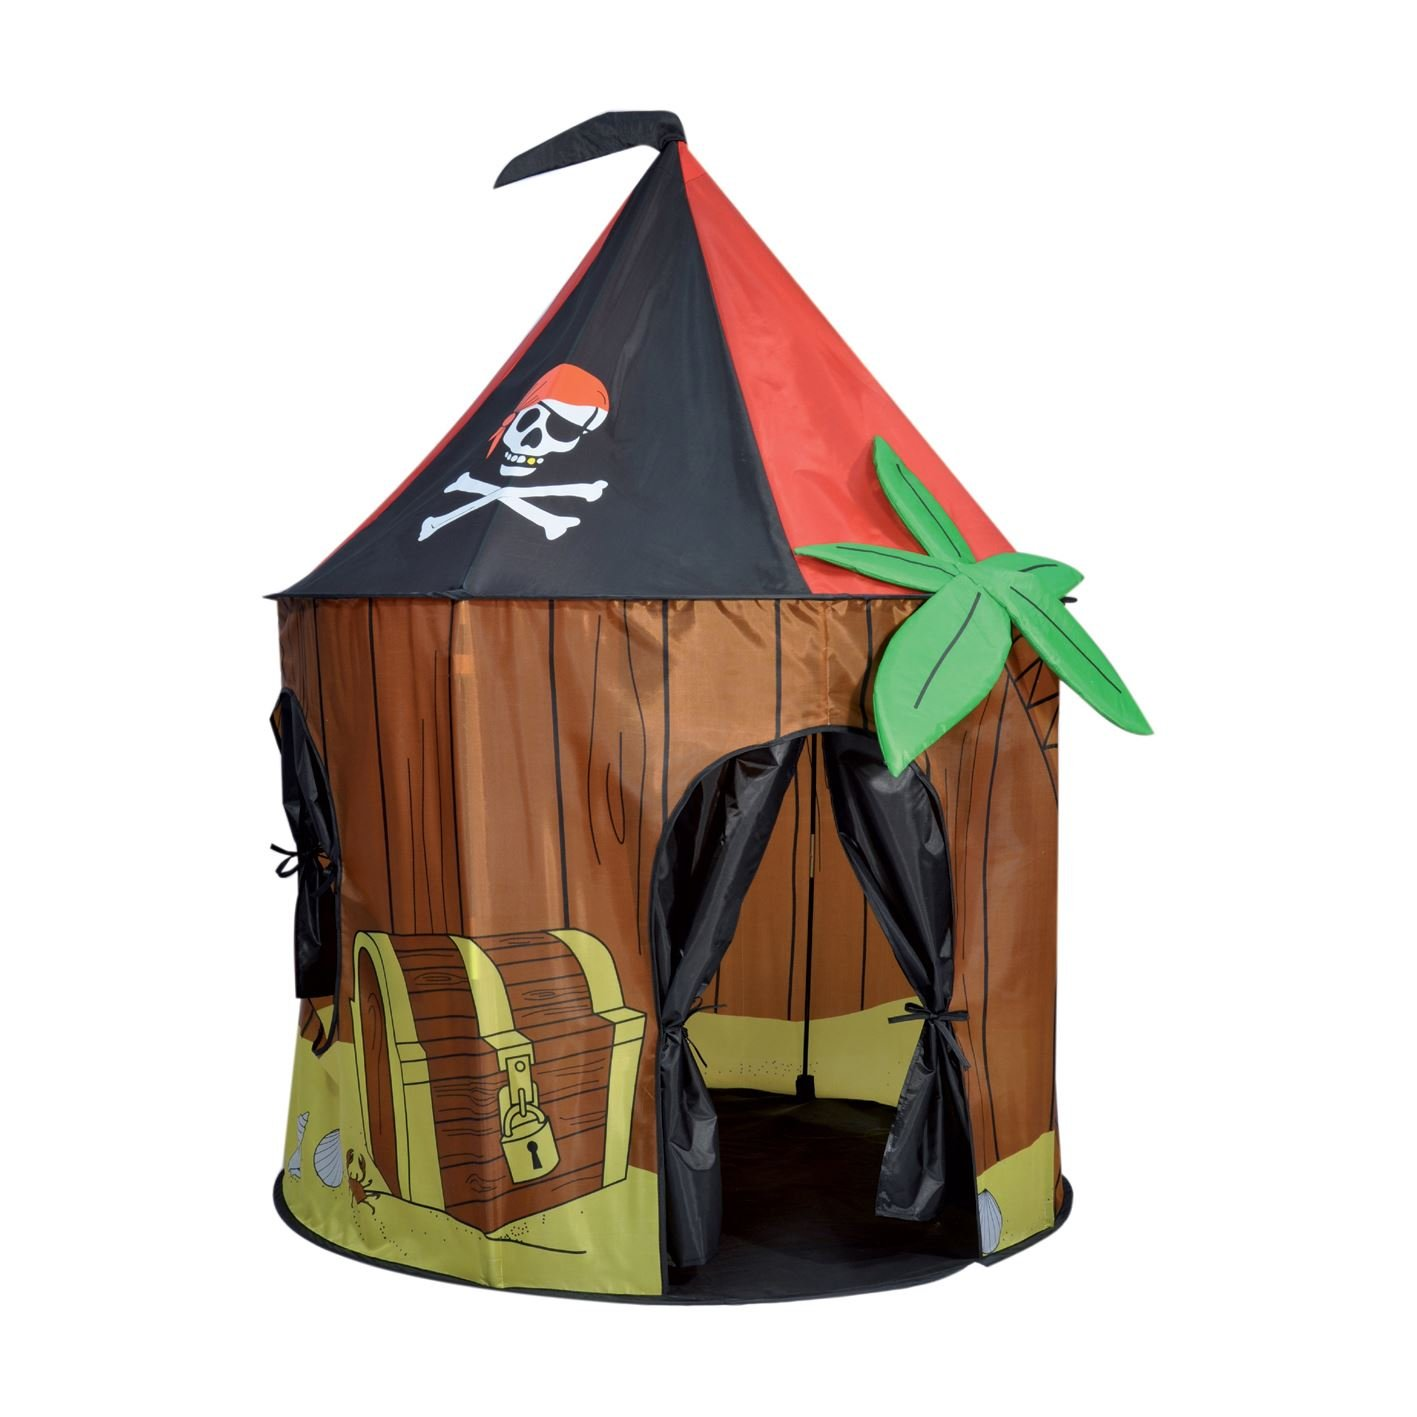 Kids Kingdom Pop-up Pirate Cabin Play Tent: Amazon.co.uk: Toys & Games